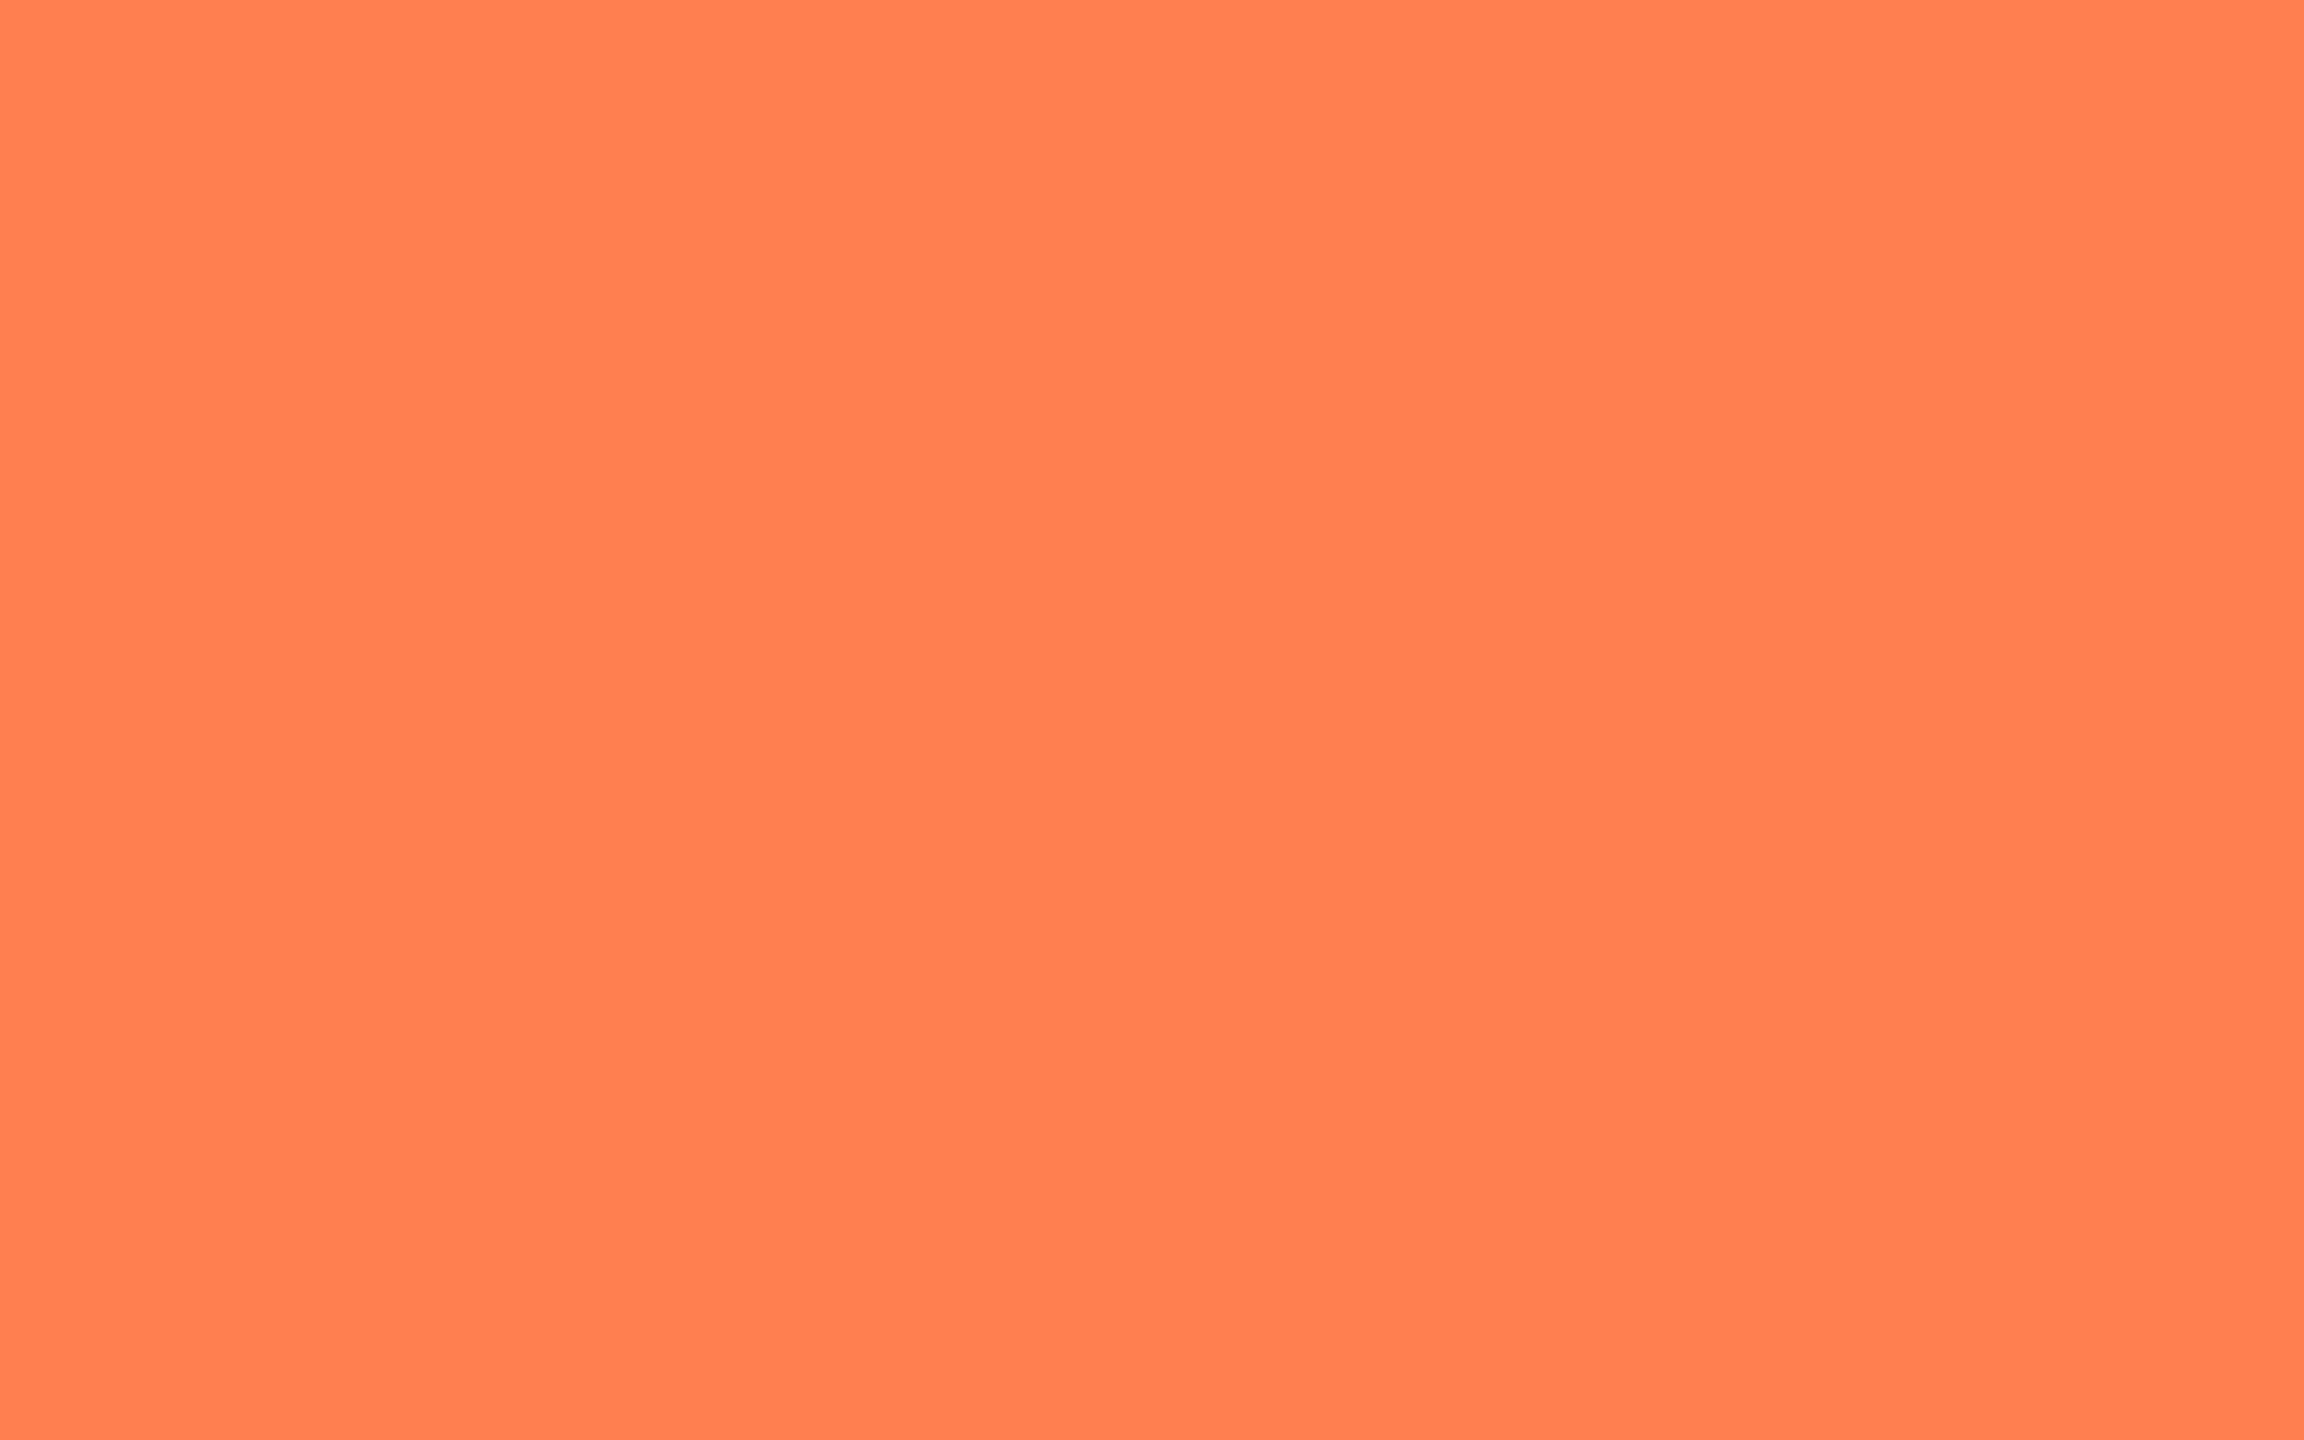 2304x1440 Coral Solid Color Background